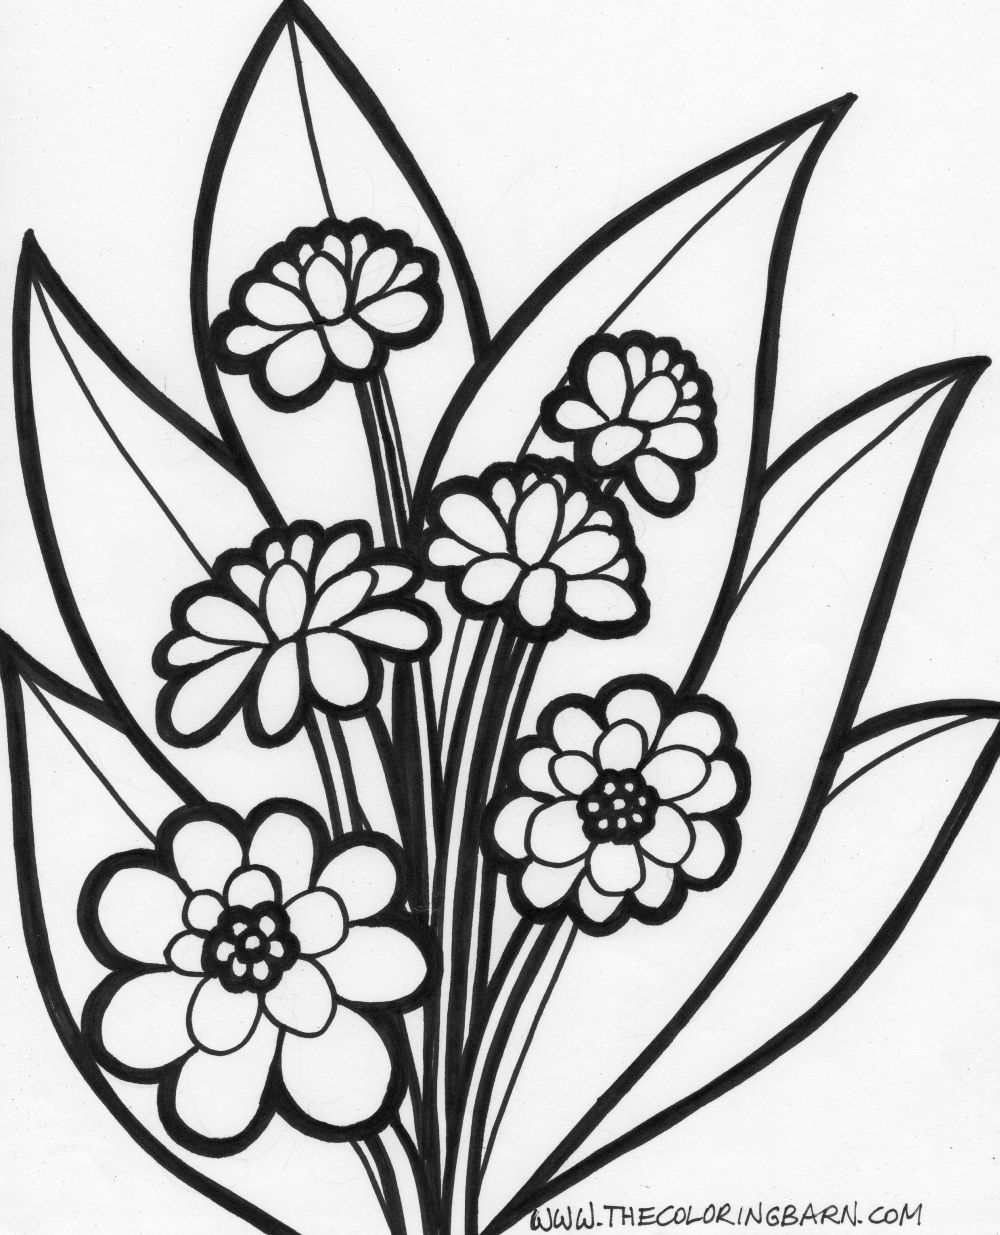 pictures to colour in of flowers flowers coloring pages coloringpages1001com in to colour flowers of pictures